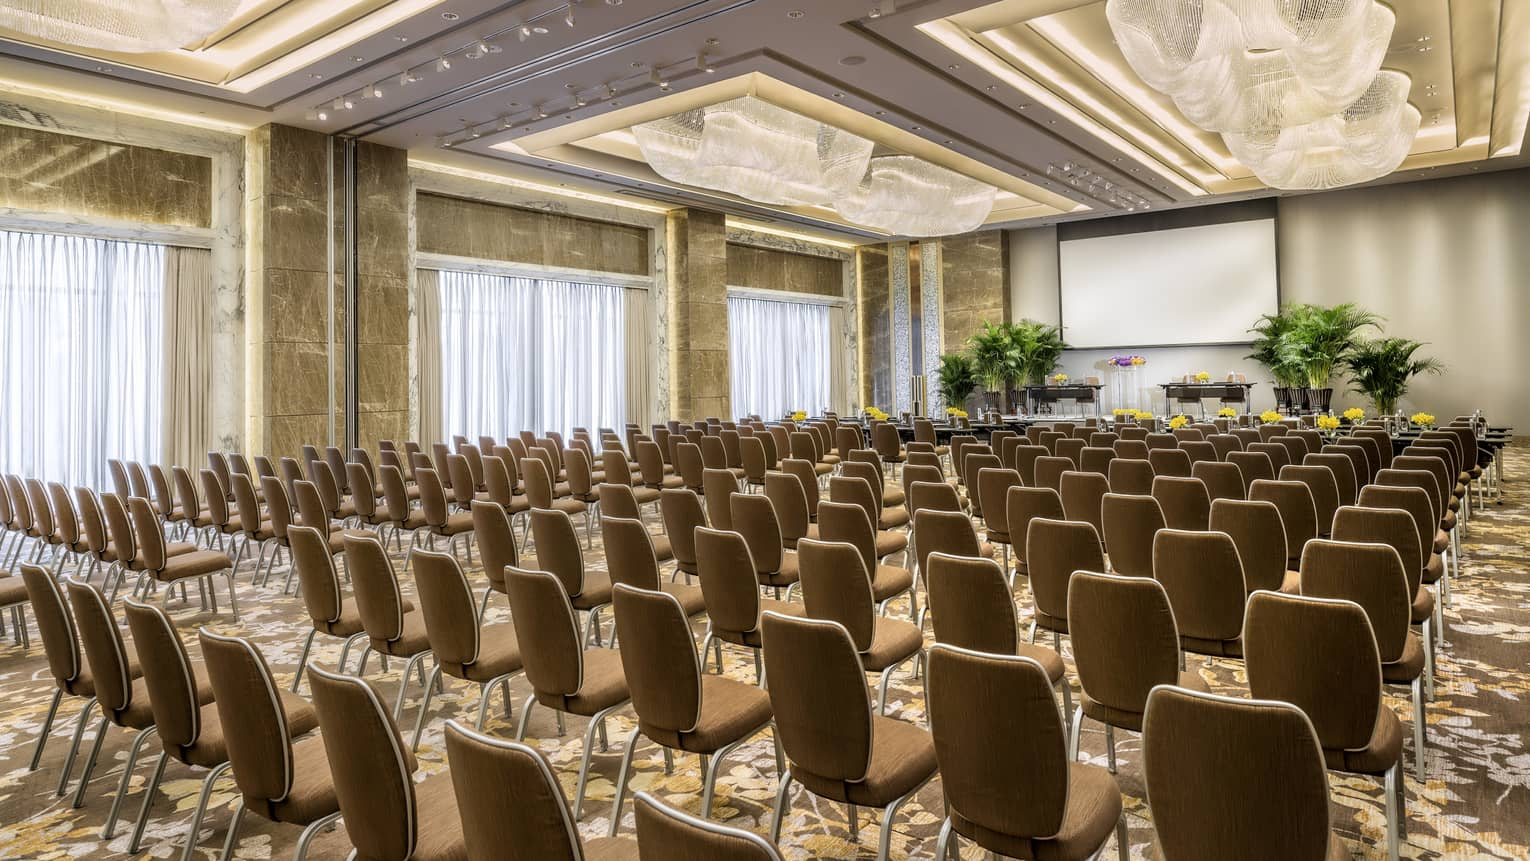 Rows of meeting chairs facing screen, potted trees in large Four Seasons Ballroom